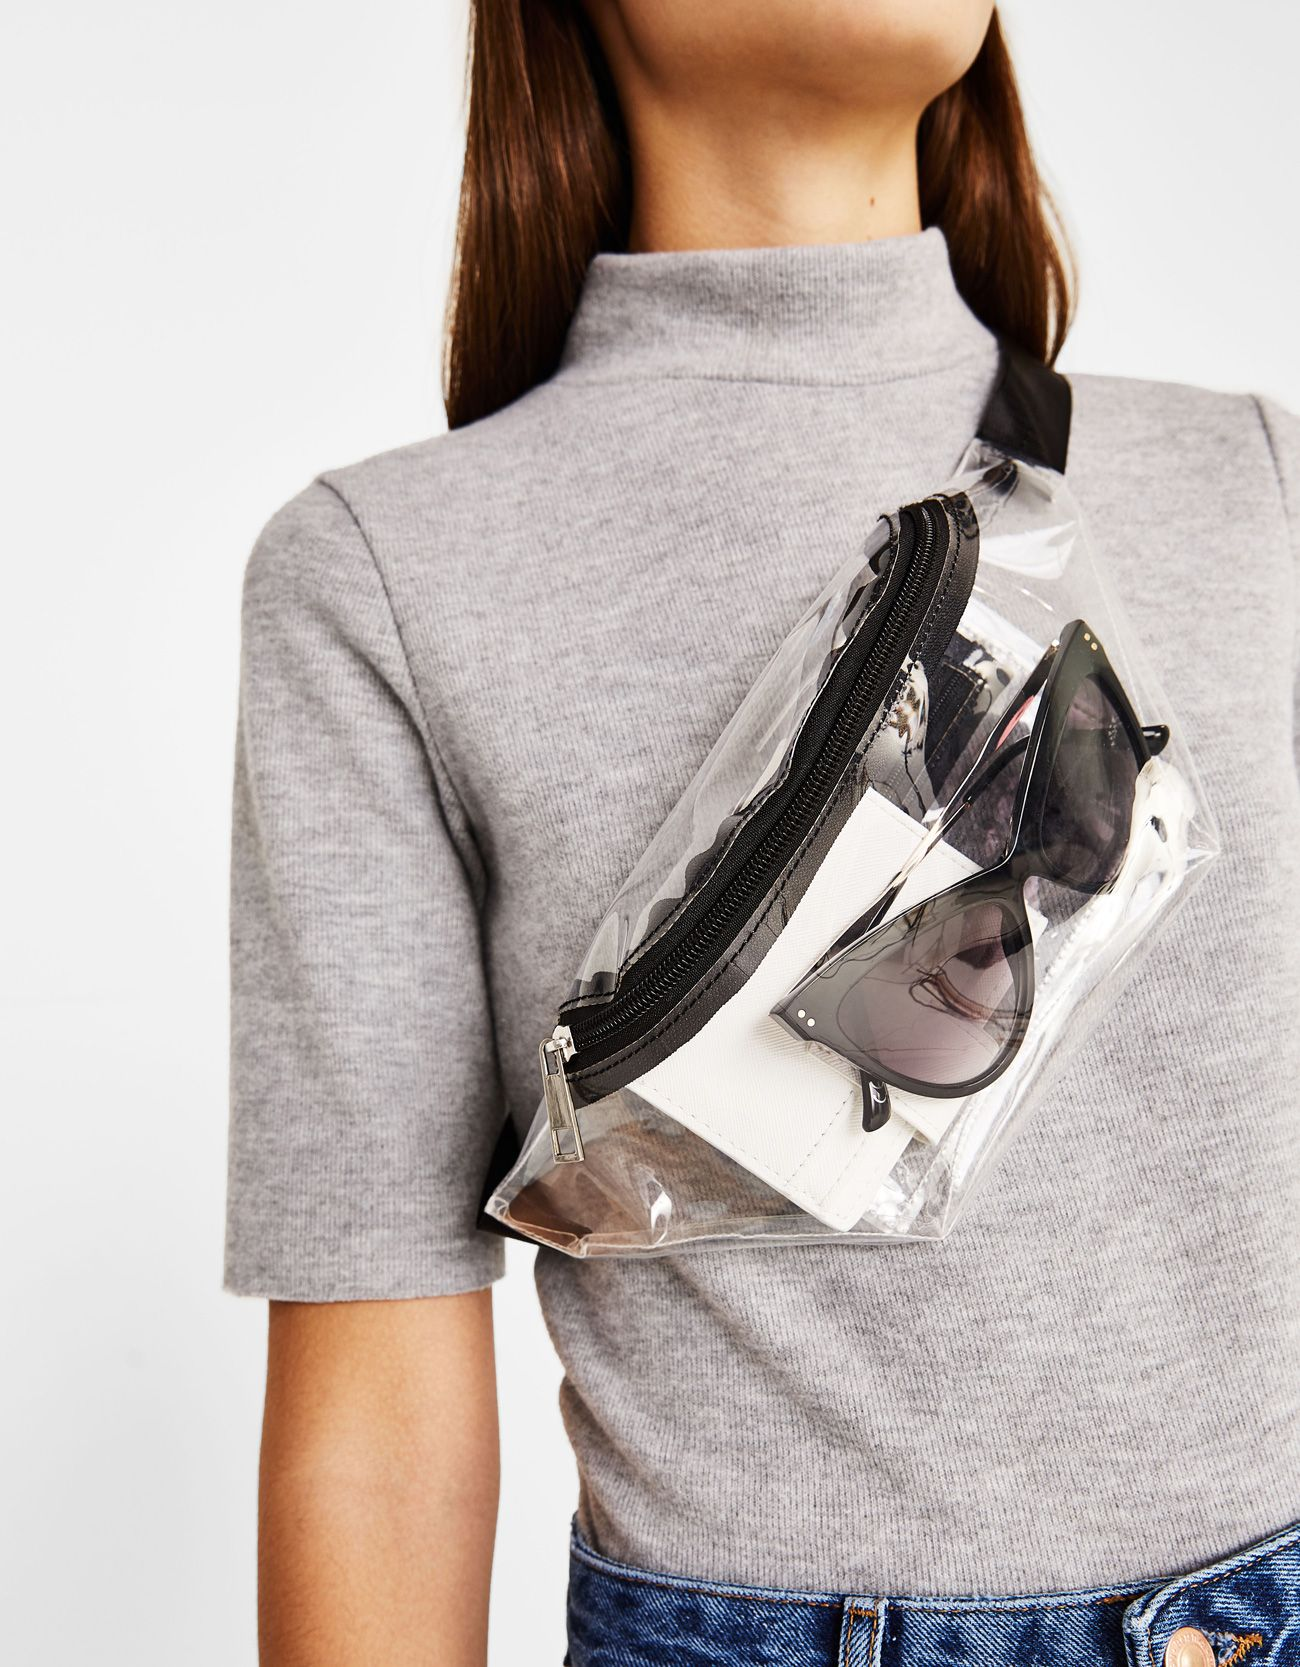 bd357e845012 Clear fanny pack in 2019 | Athleisure | Bags, Hip bag, Transparent bag